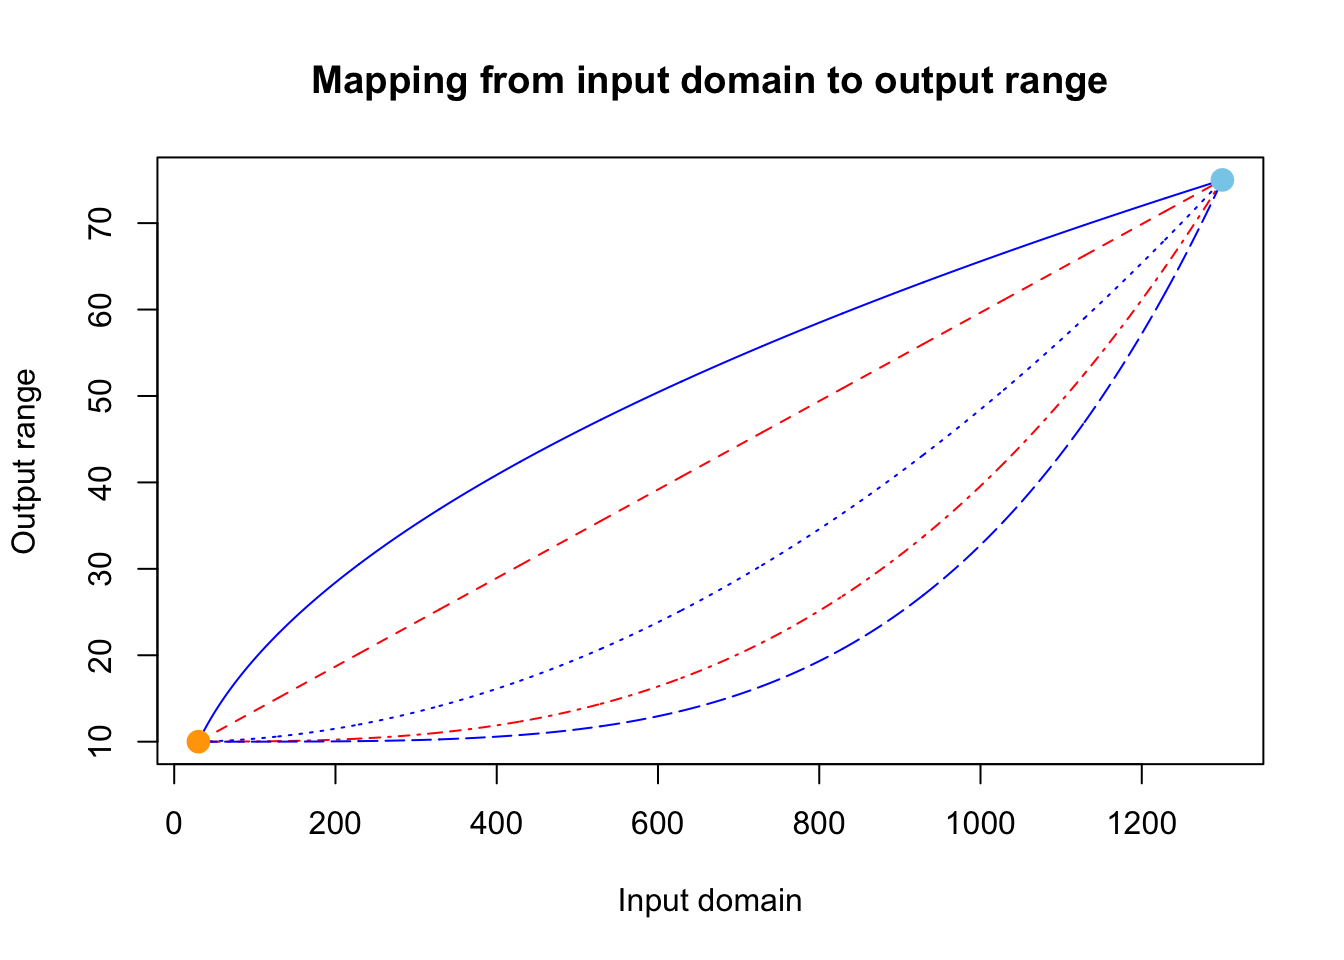 Mapping from input domain to output range